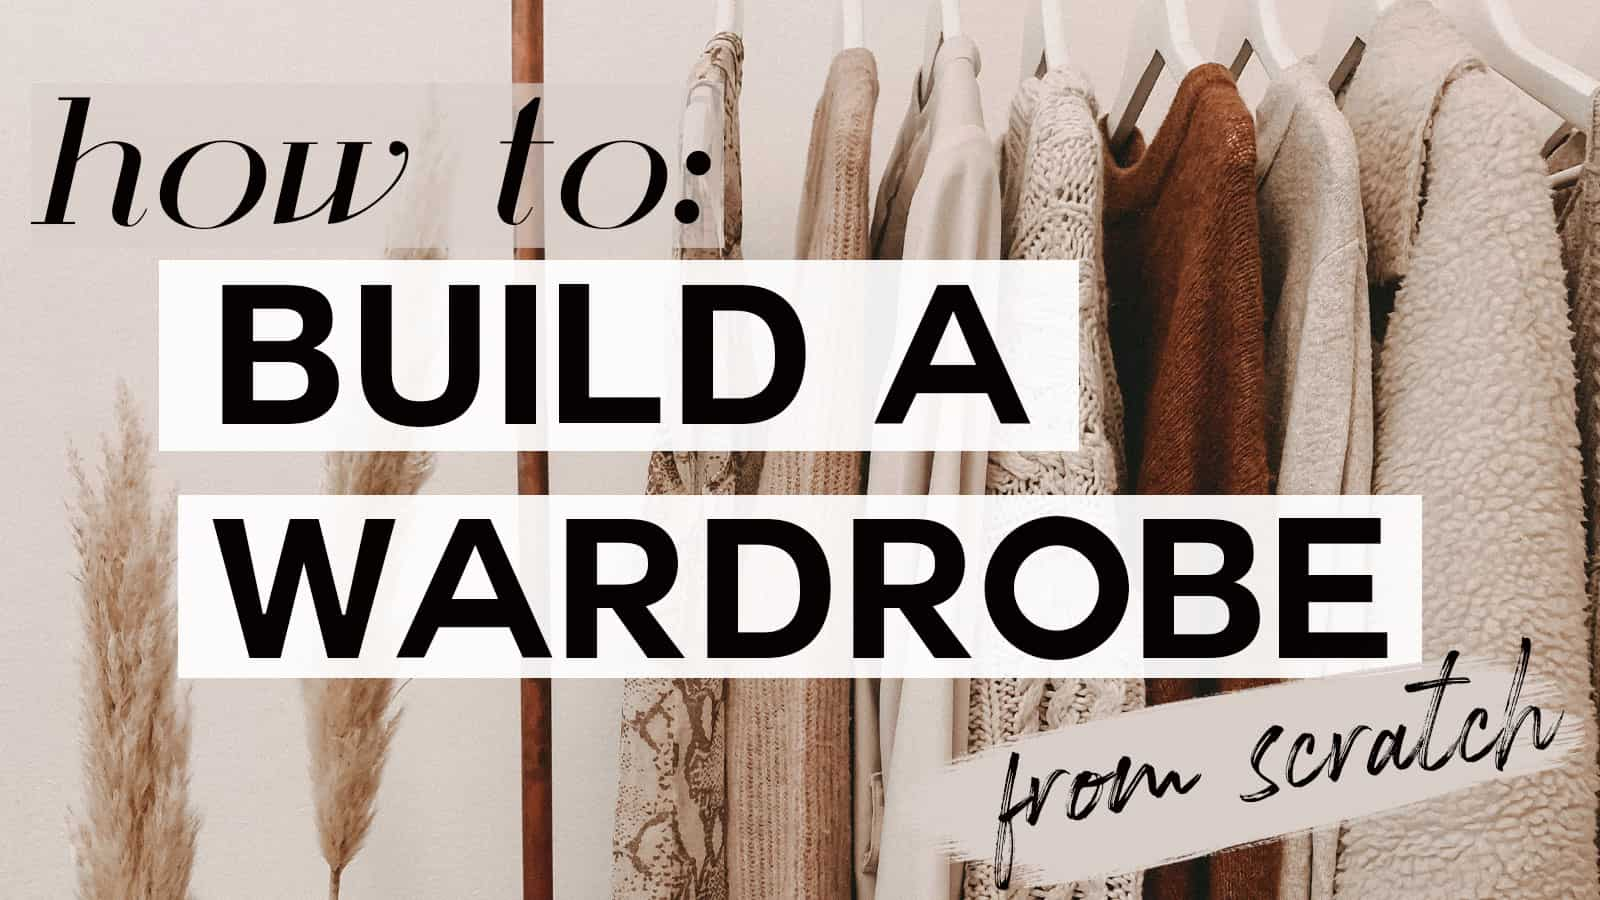 how to build a wardrobe from scratch, and how to build a chic wardrobe